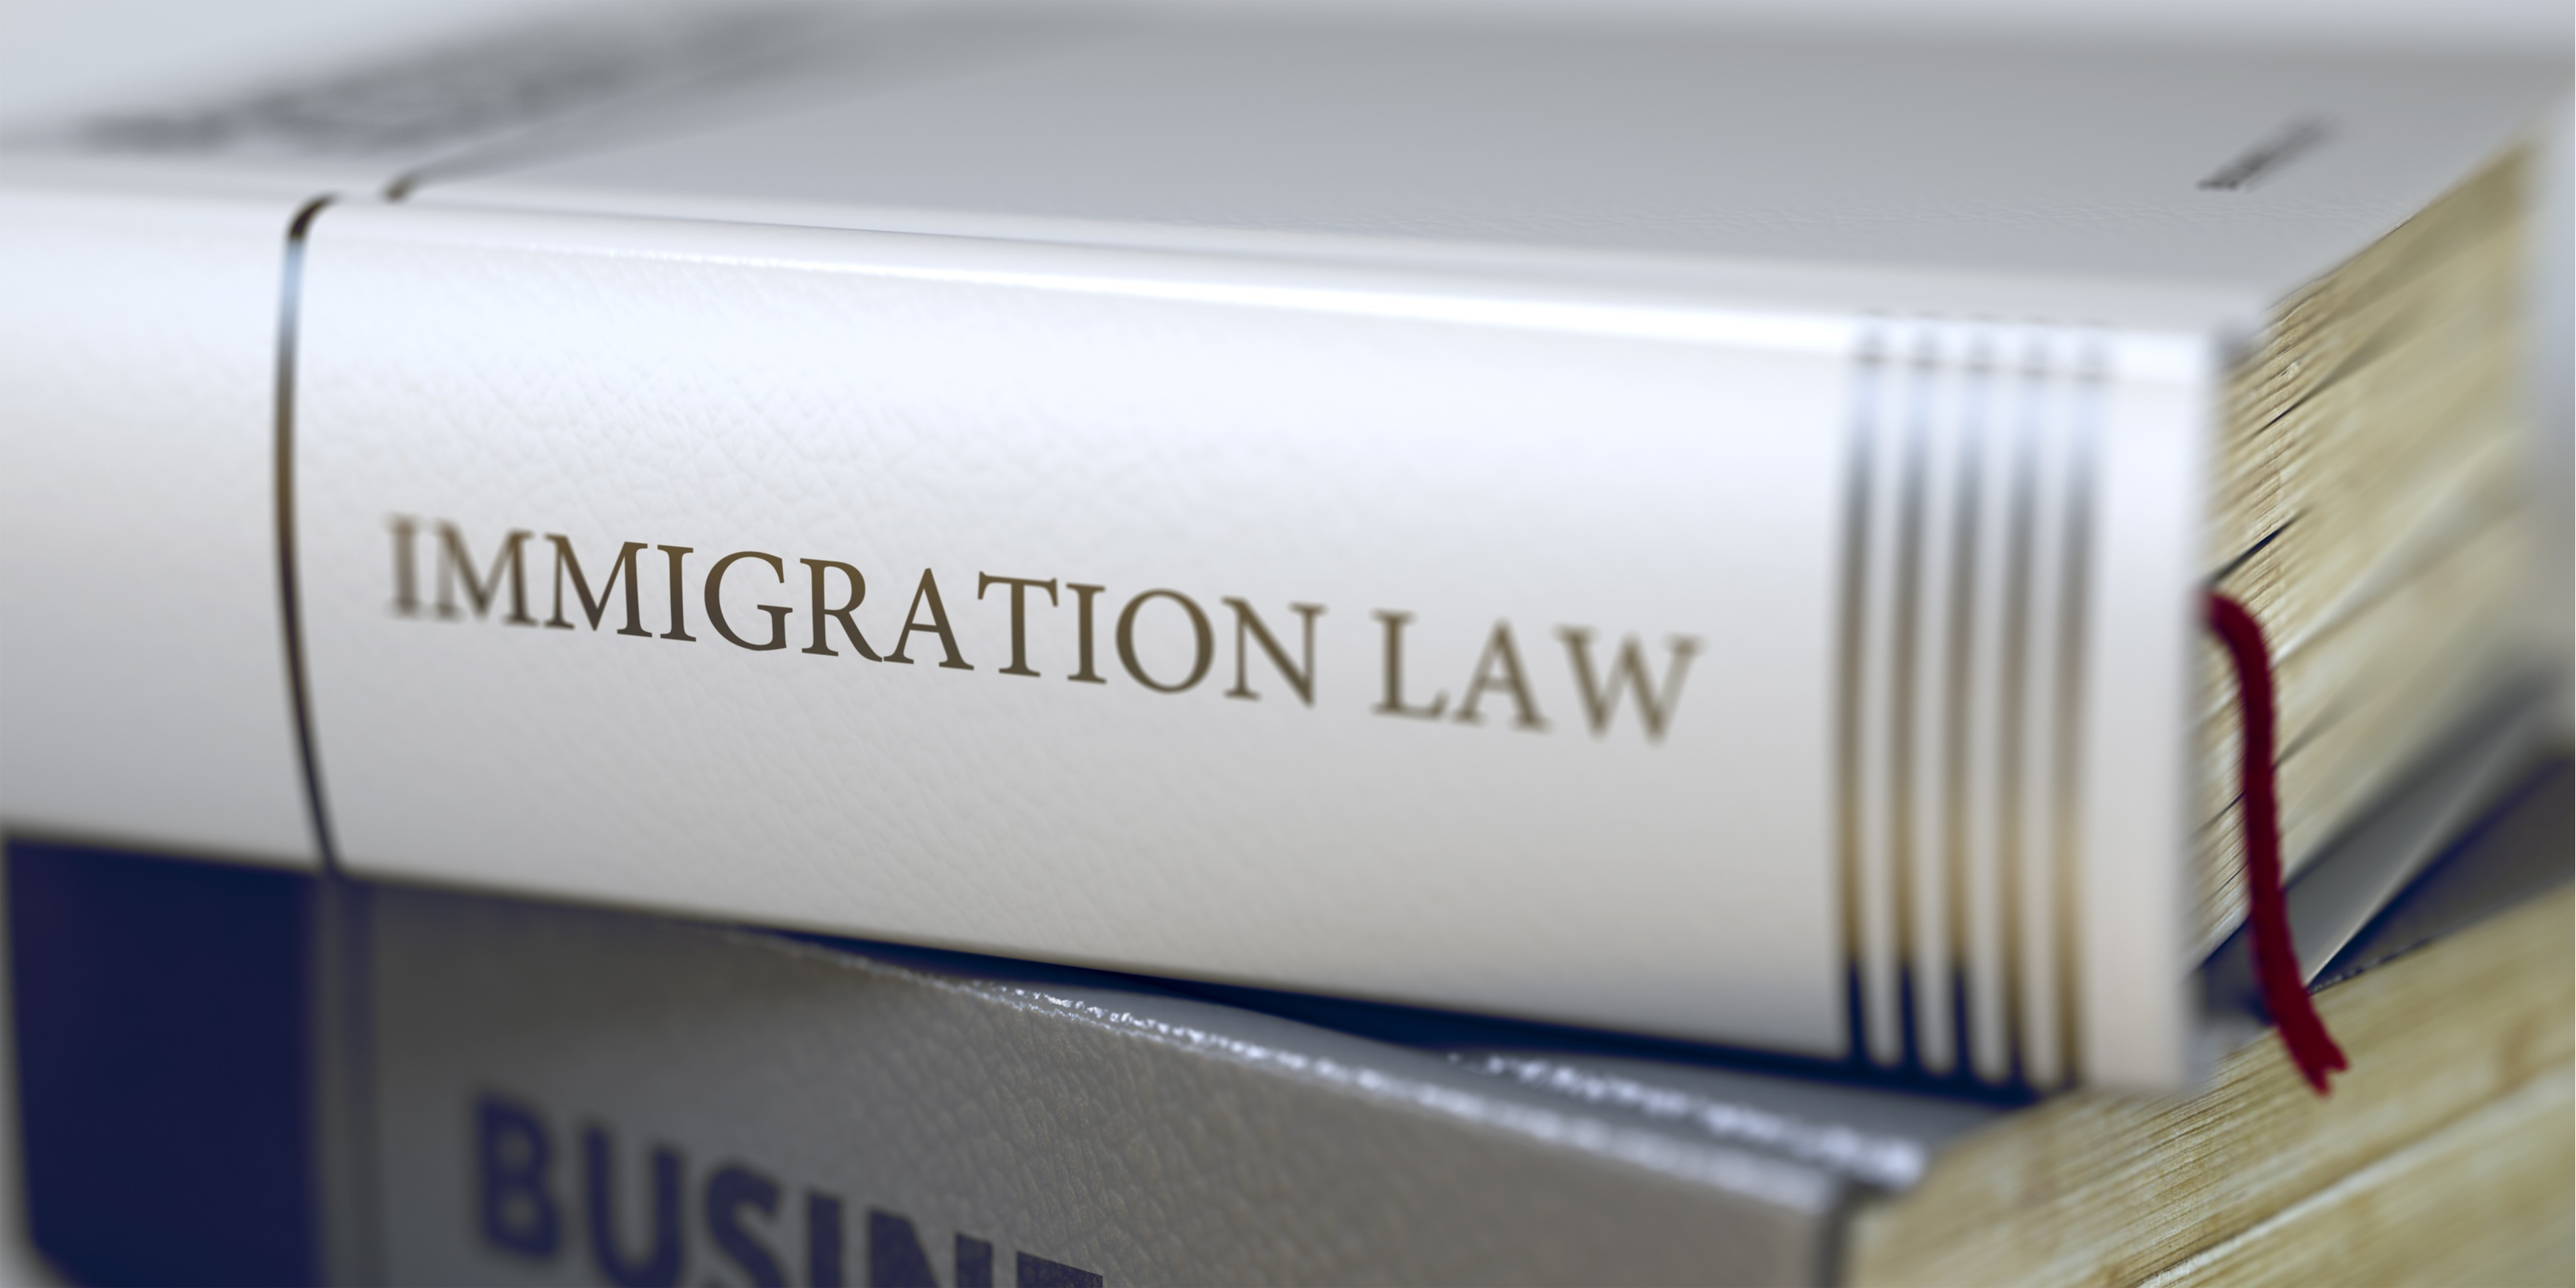 D'Andrea Law Corporation | Immigration Law at 510 S Grand Ave #203 - Glendora CA - Reviews - Photos - Phone Number